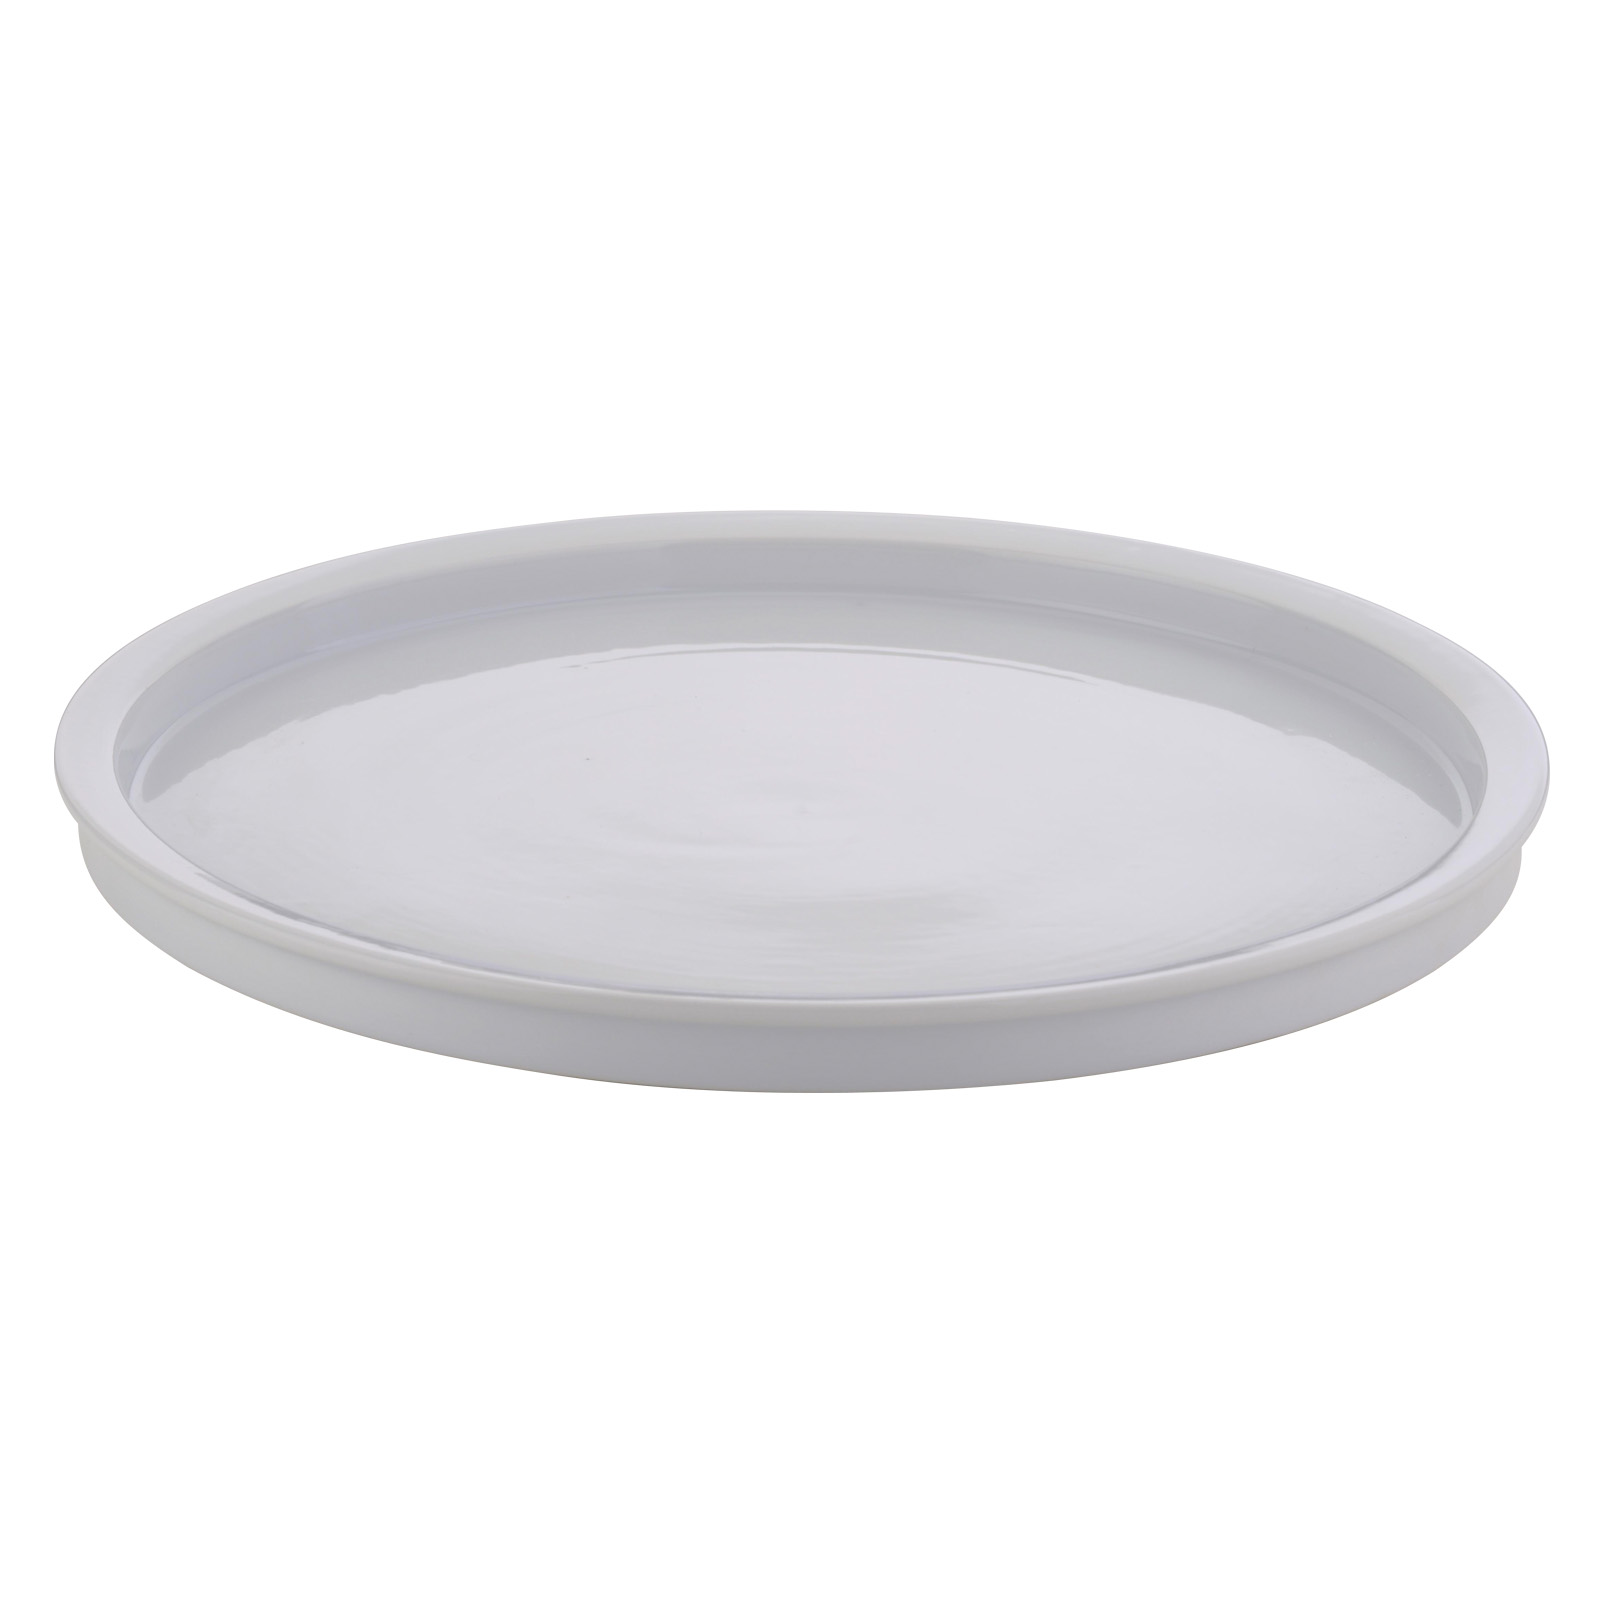 Cake Plate with Dome  - Base Only